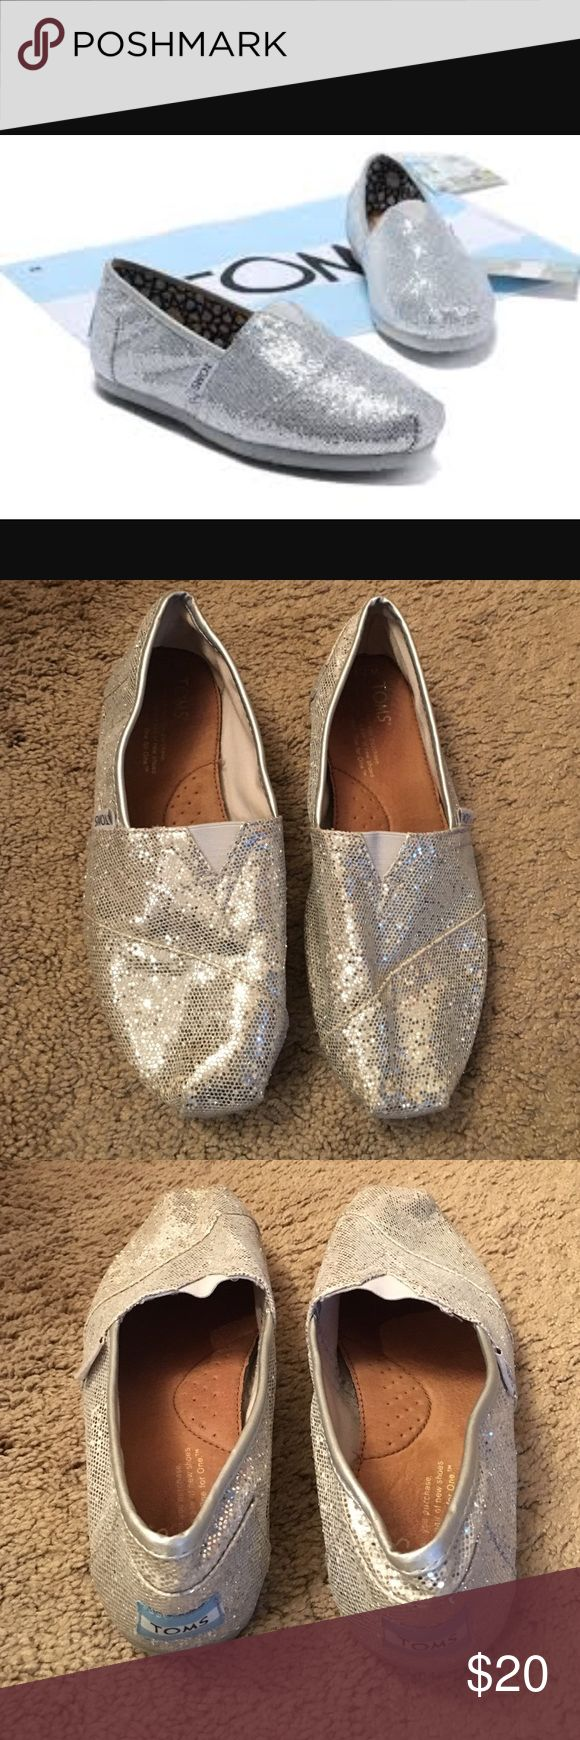 New Listing! Silver glitter TOMS Silver Glitter TOMS slip ons. Gently used with lots of life left. Size - 7.5 TOMS Shoes Flats & Loafers